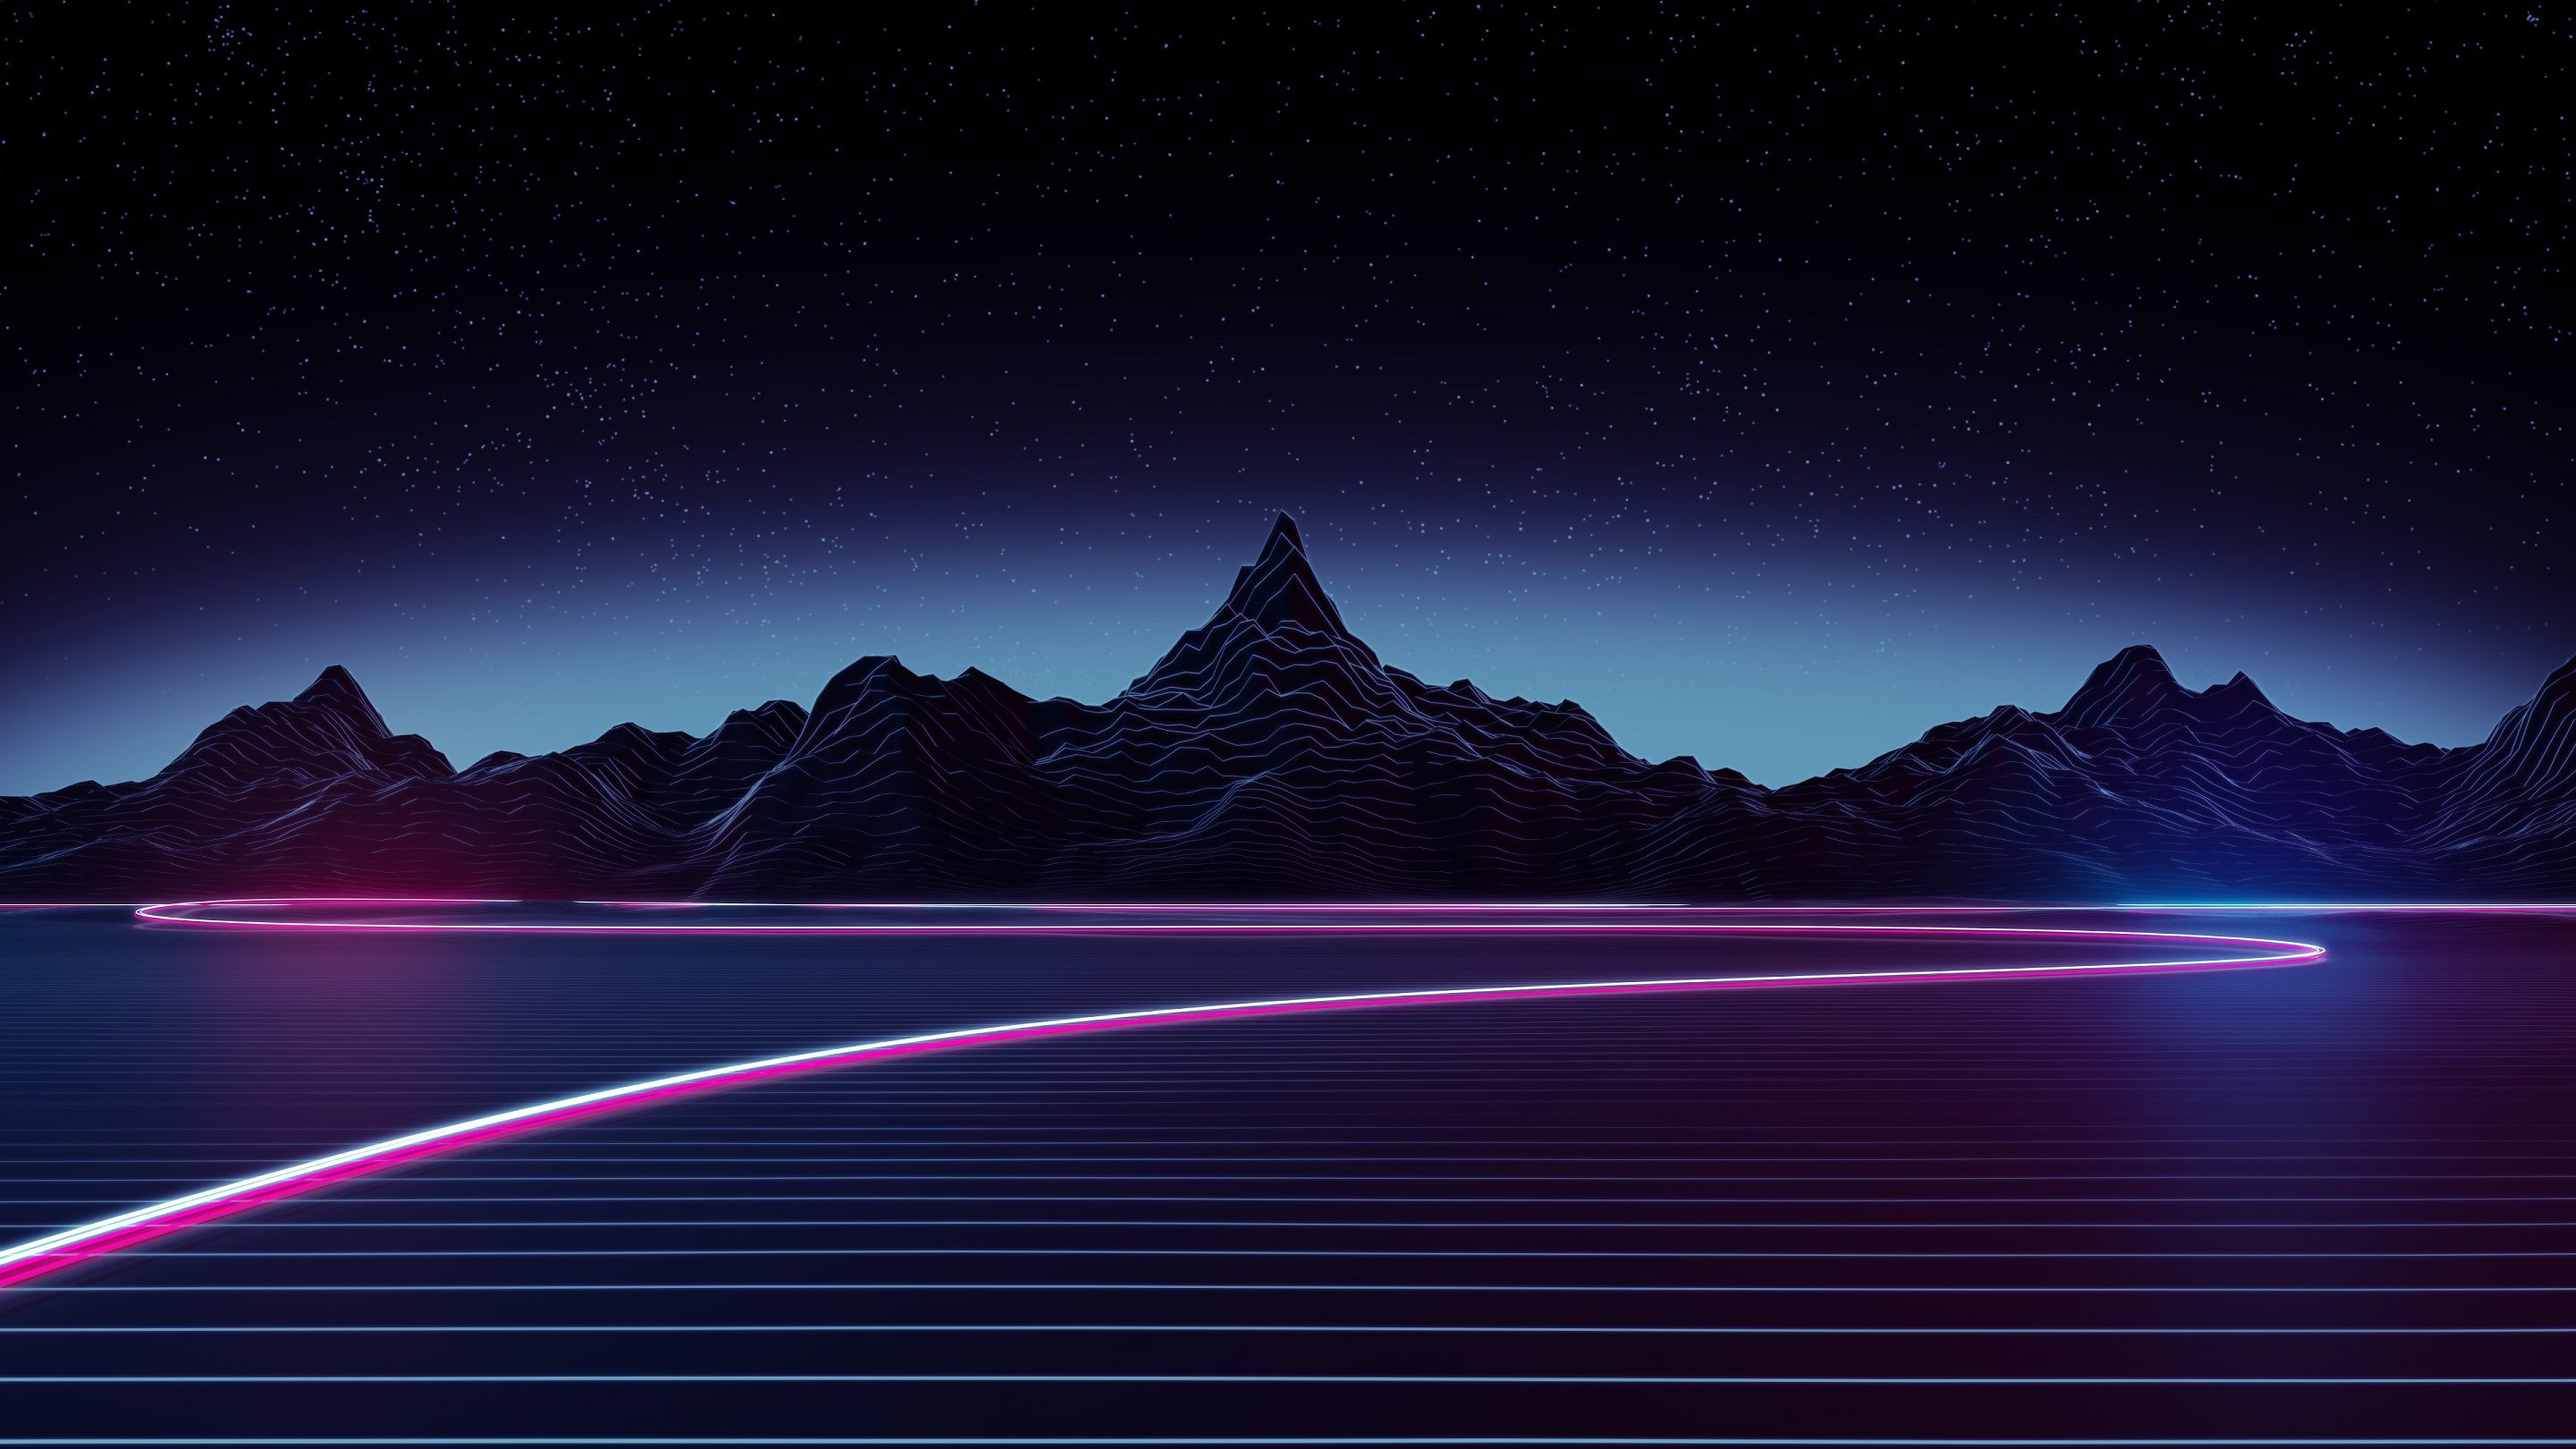 80s Aesthetic Wallpapers Animated Wallpaper 4k Is Amazing Hd Wallpapers For Desktop Or Mobile Explor In 2020 Vaporwave Wallpaper Neon Wallpaper Aesthetic Wallpapers